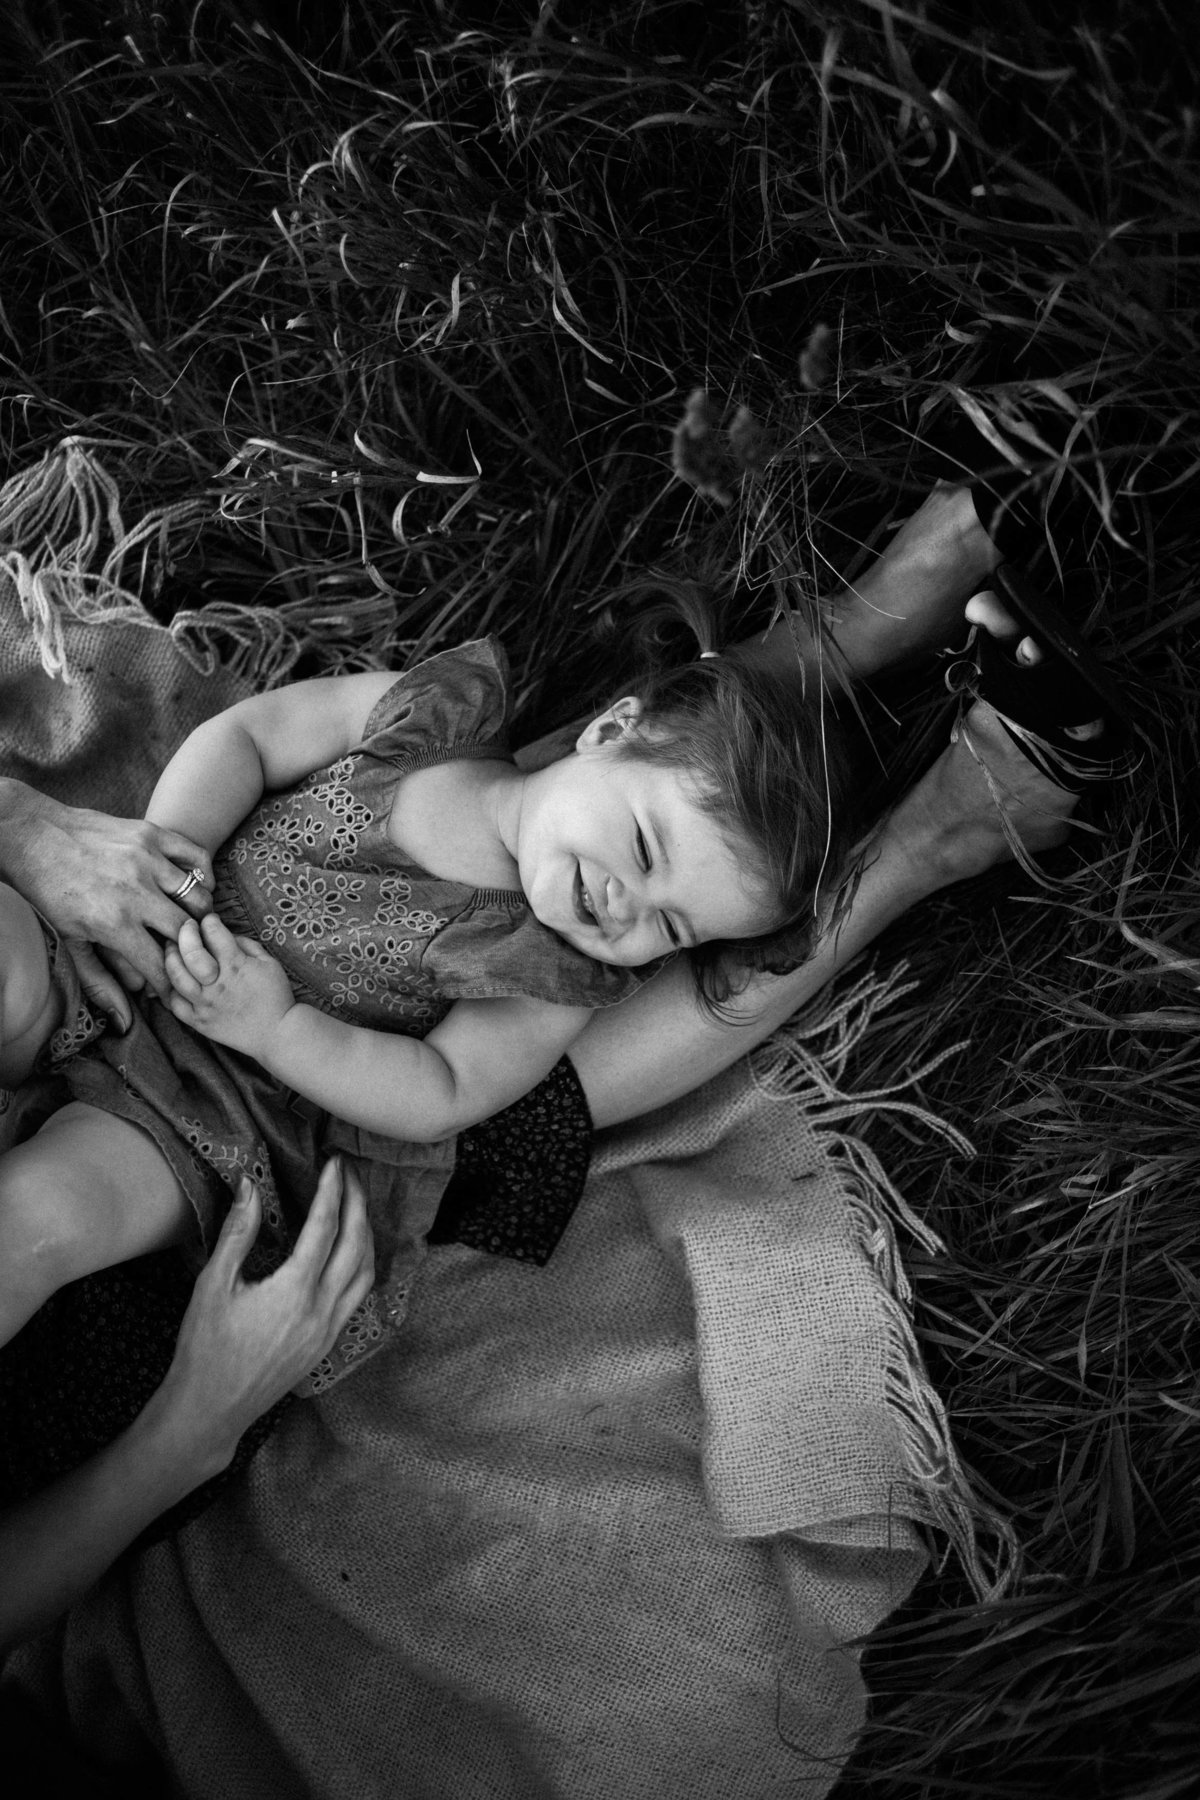 Mom tickling her baby girl on a blanket in an open field